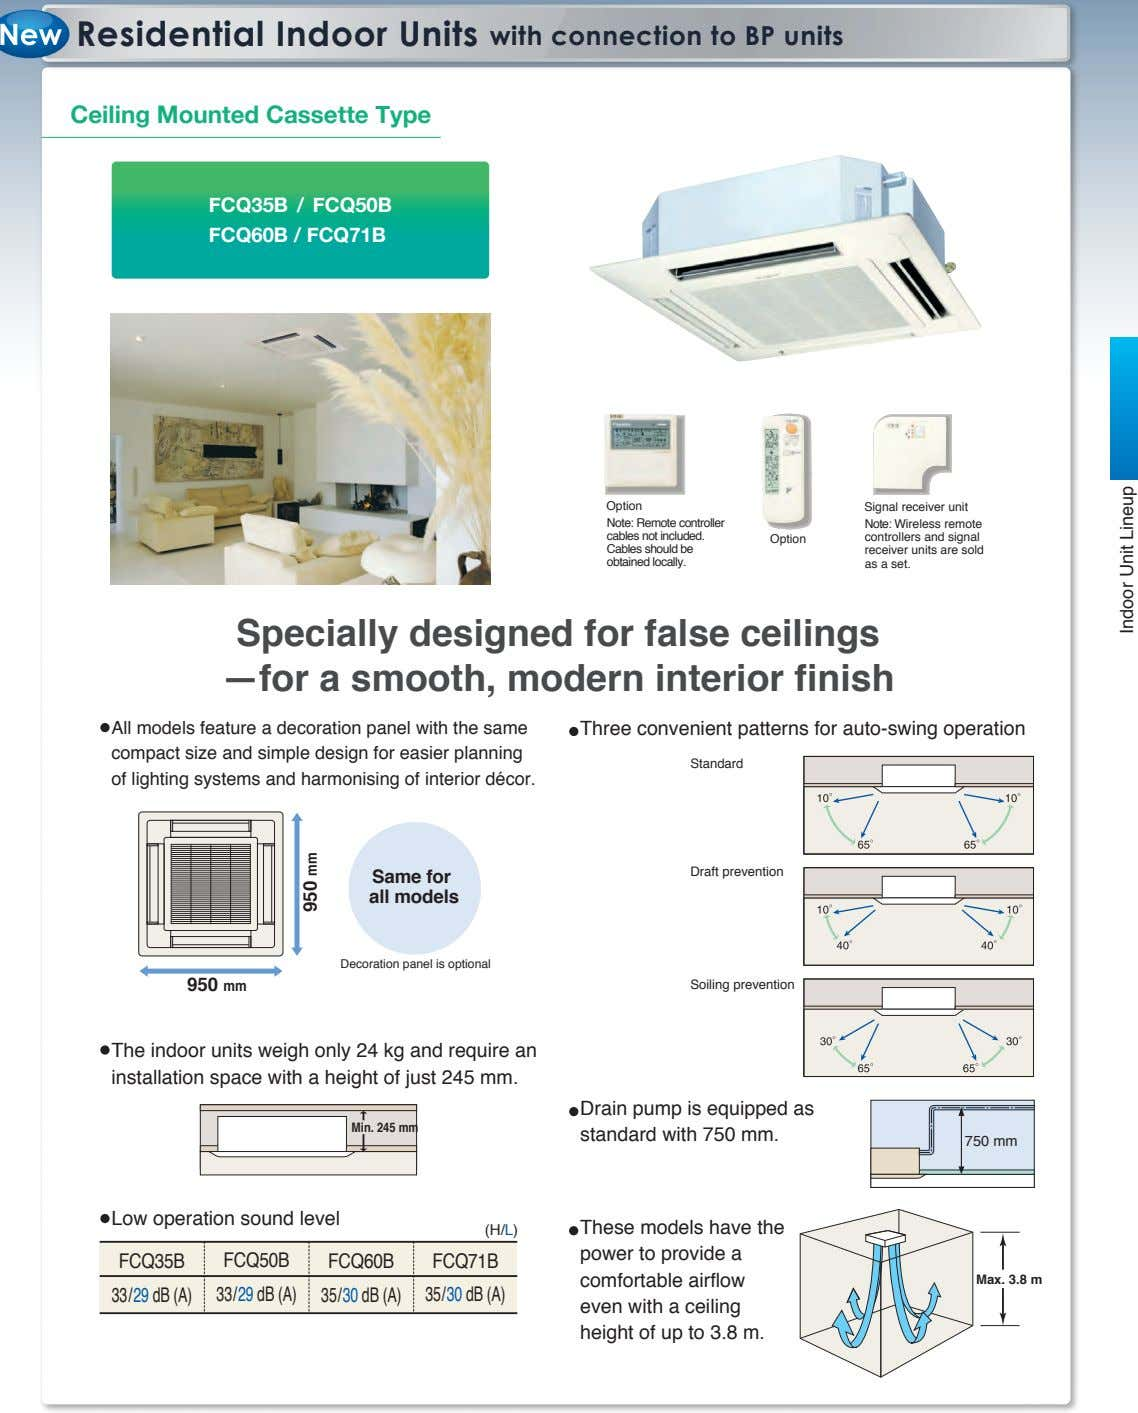 Residential Indoor Units with connection to BP units Ceiling Mounted Cassette Type FCQ35B / FCQ50B